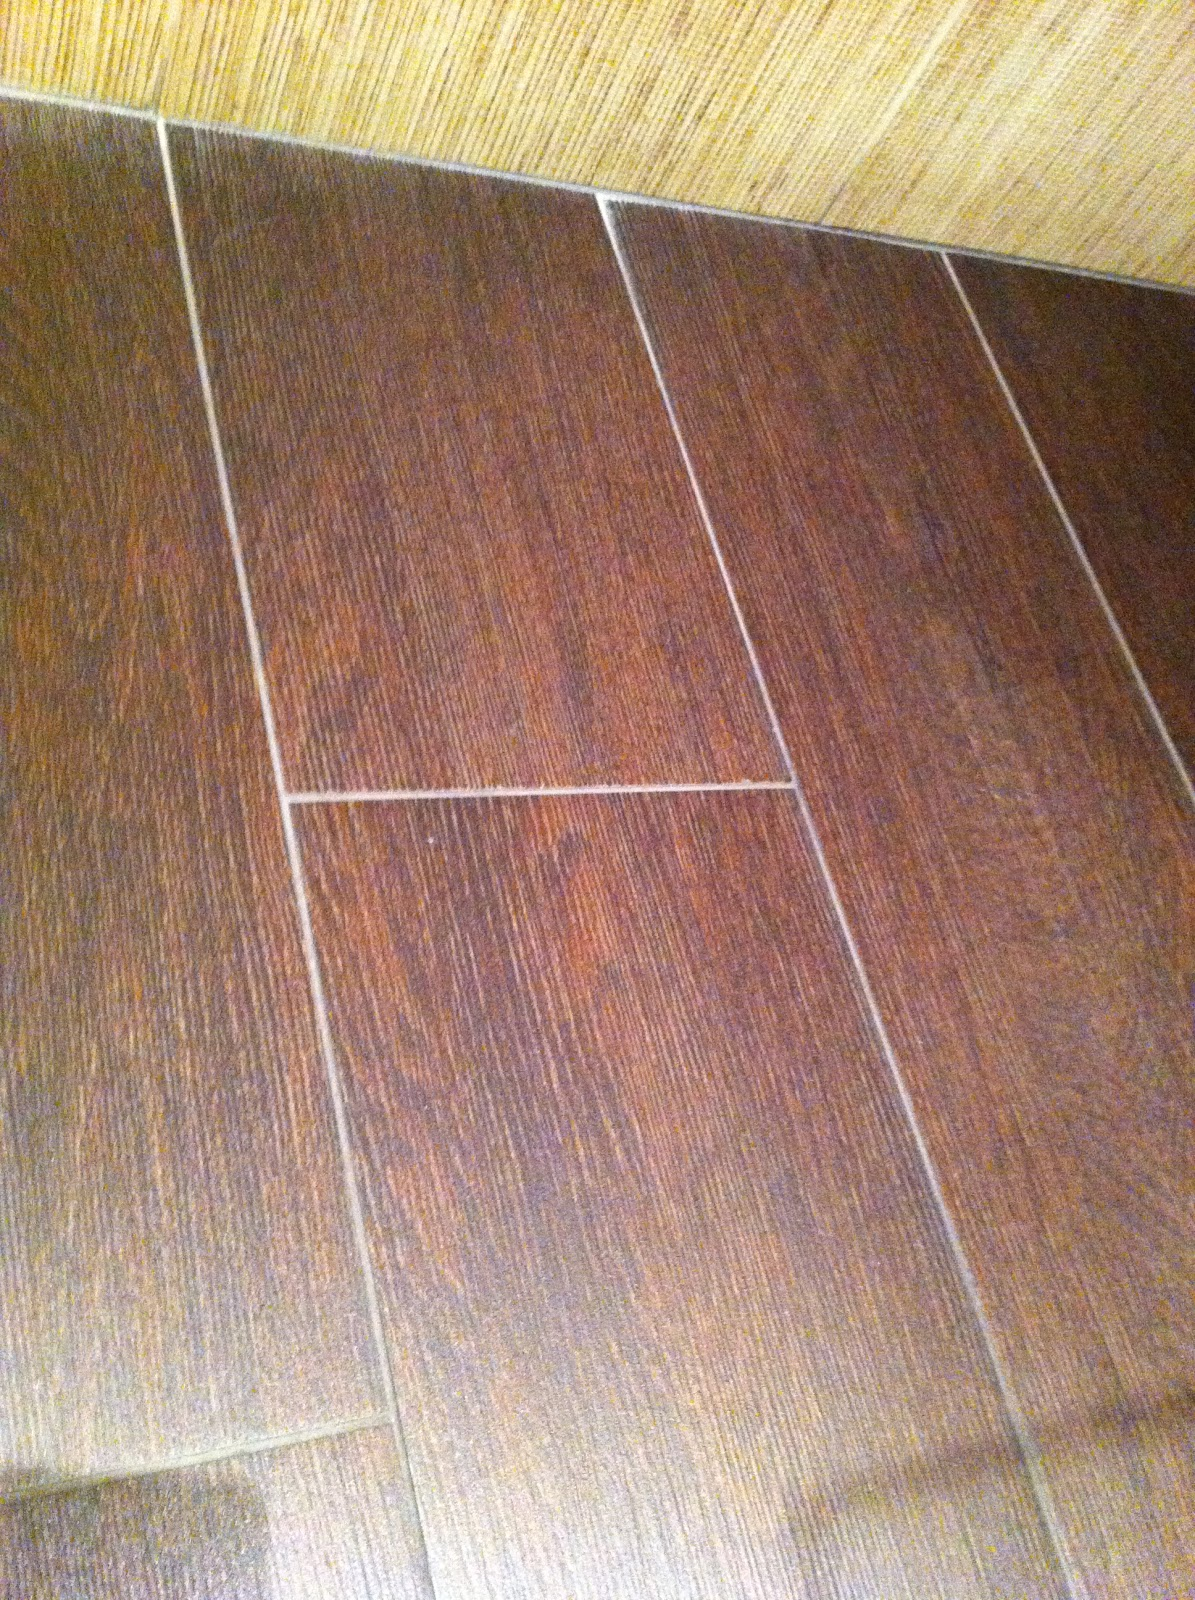 To Da Loos Bamboo Tiles And Fake Wood Floor Porcelaine Tiled Bathroom